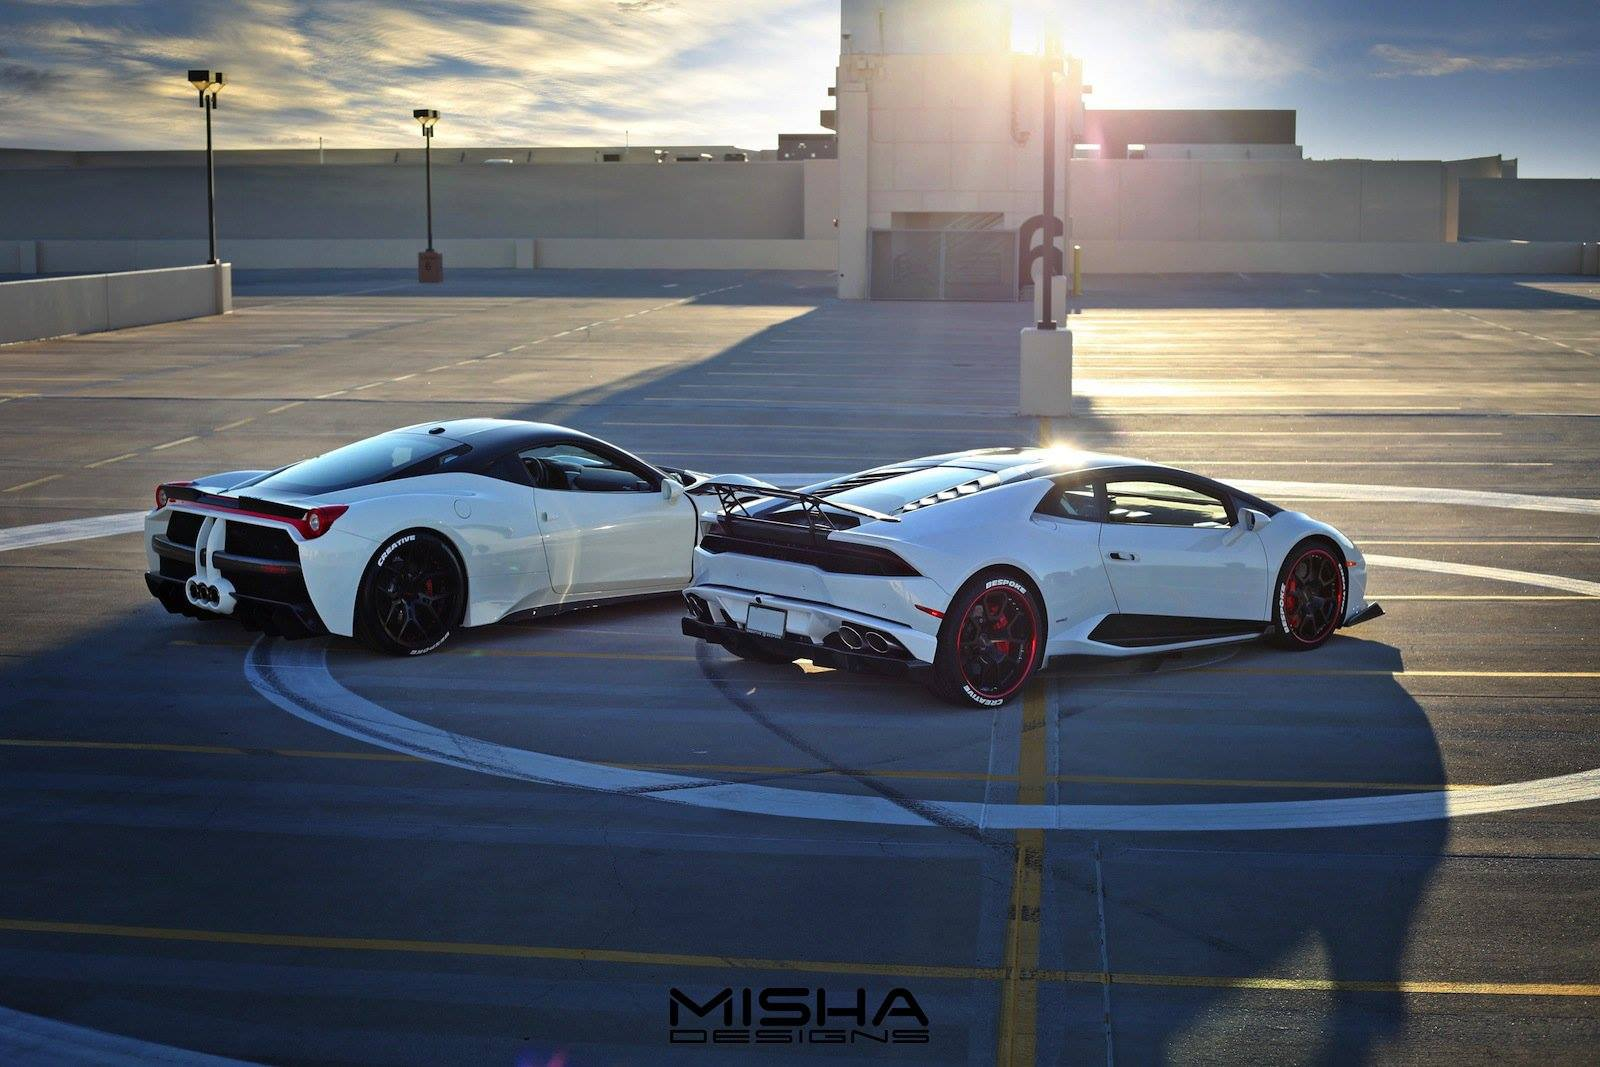 Ferrari 458 Italia with Misha Designs Widebody Kit